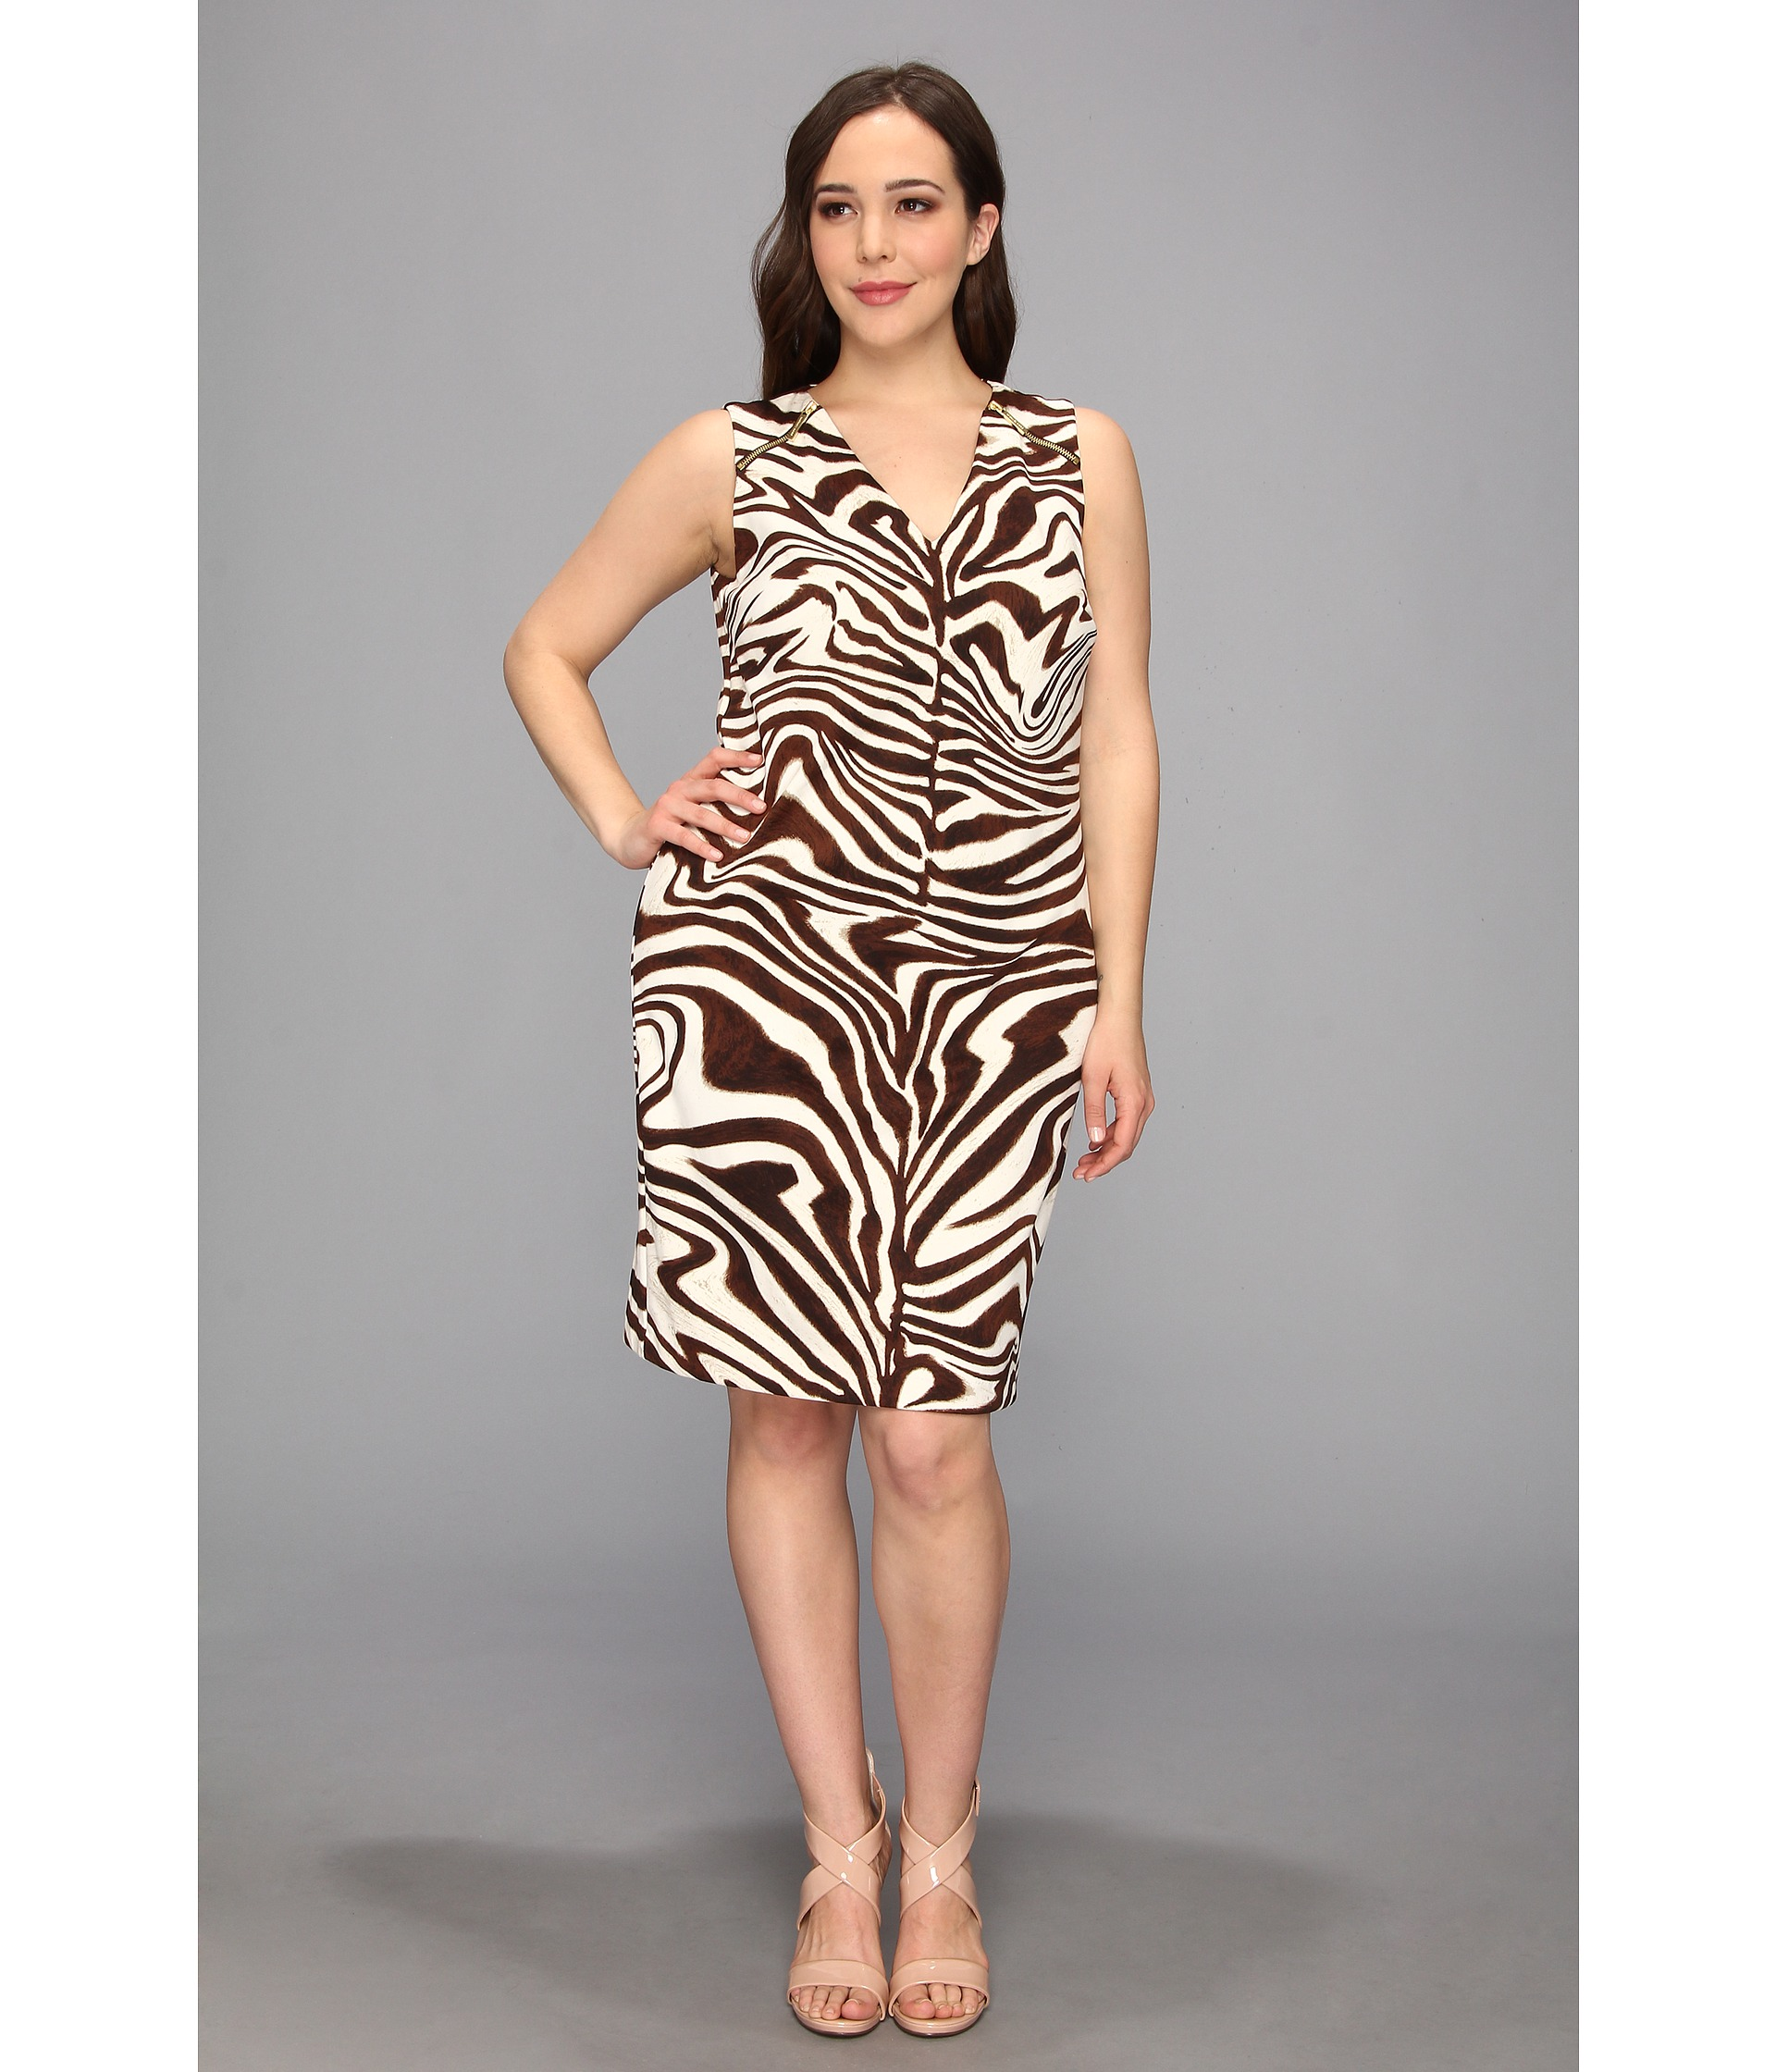 plus size attire on clearance